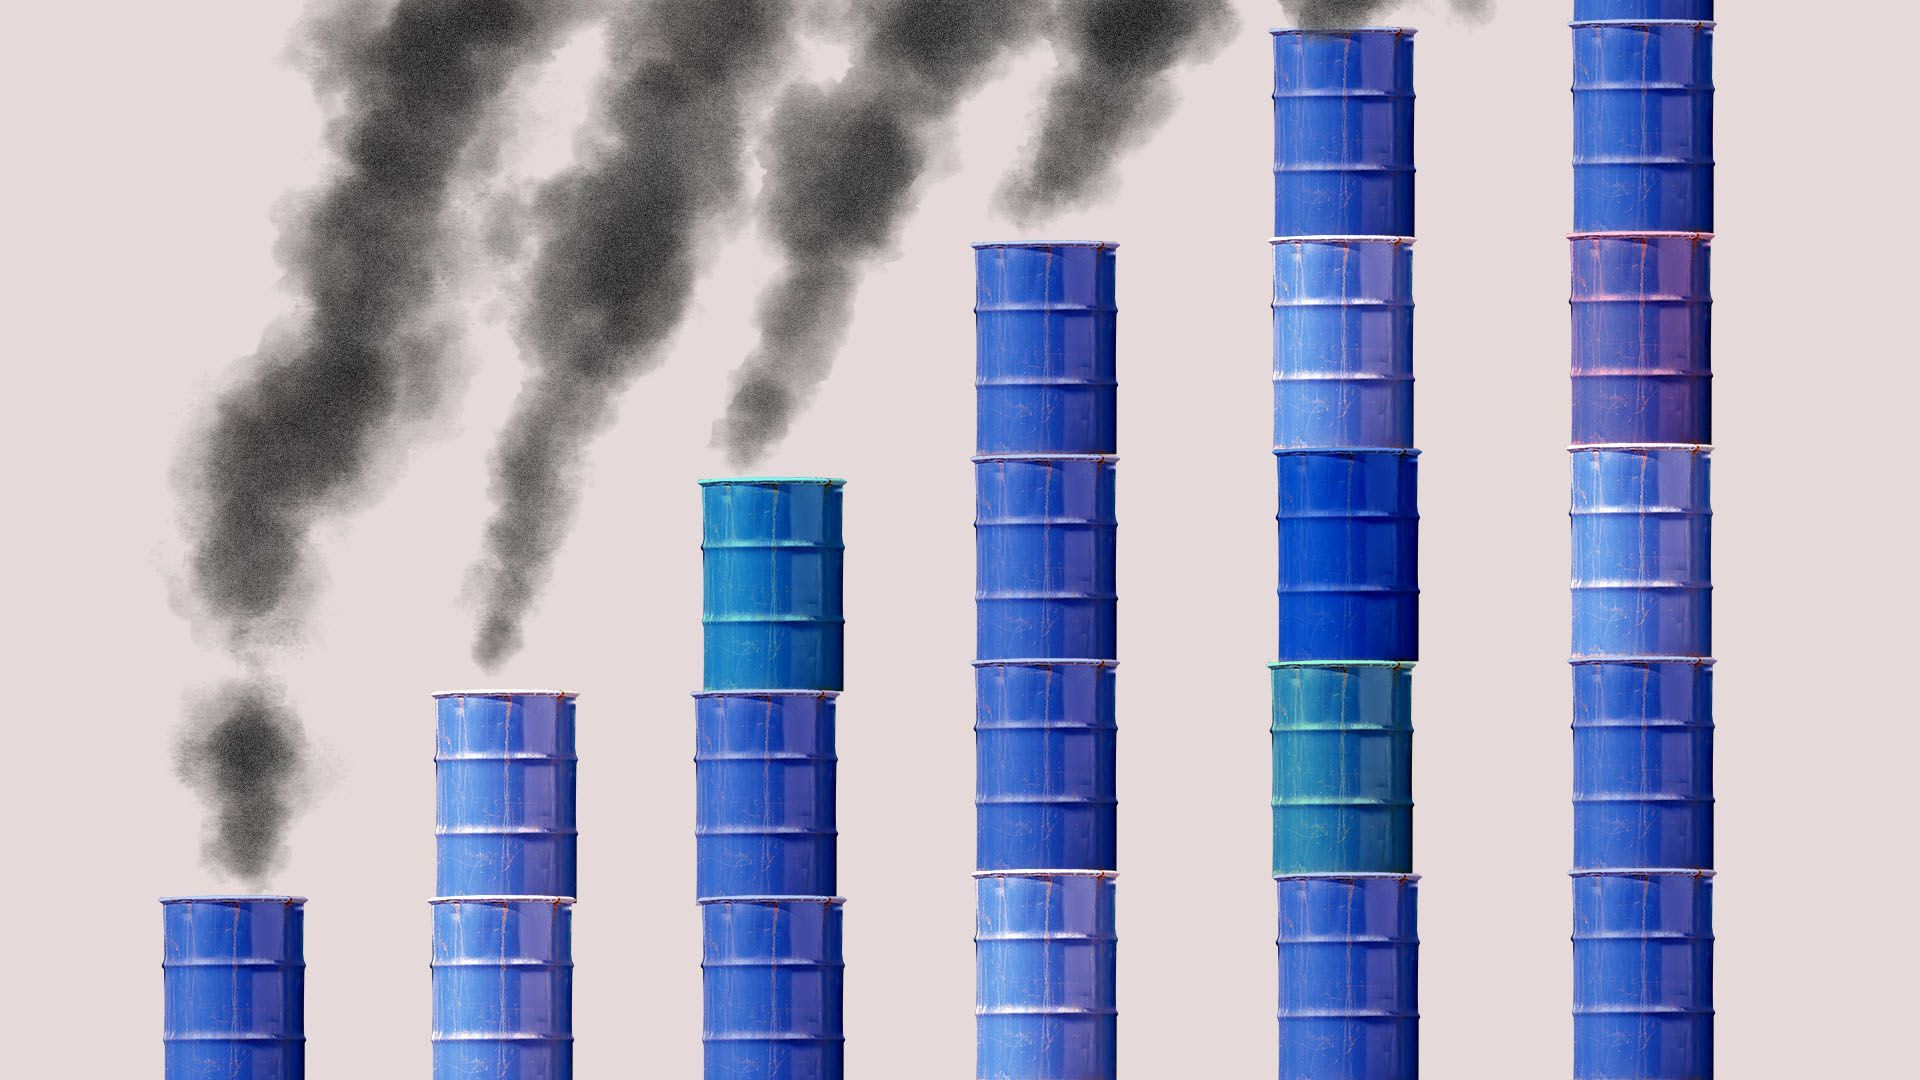 Illustration of oil barrels acting as smoke stacks